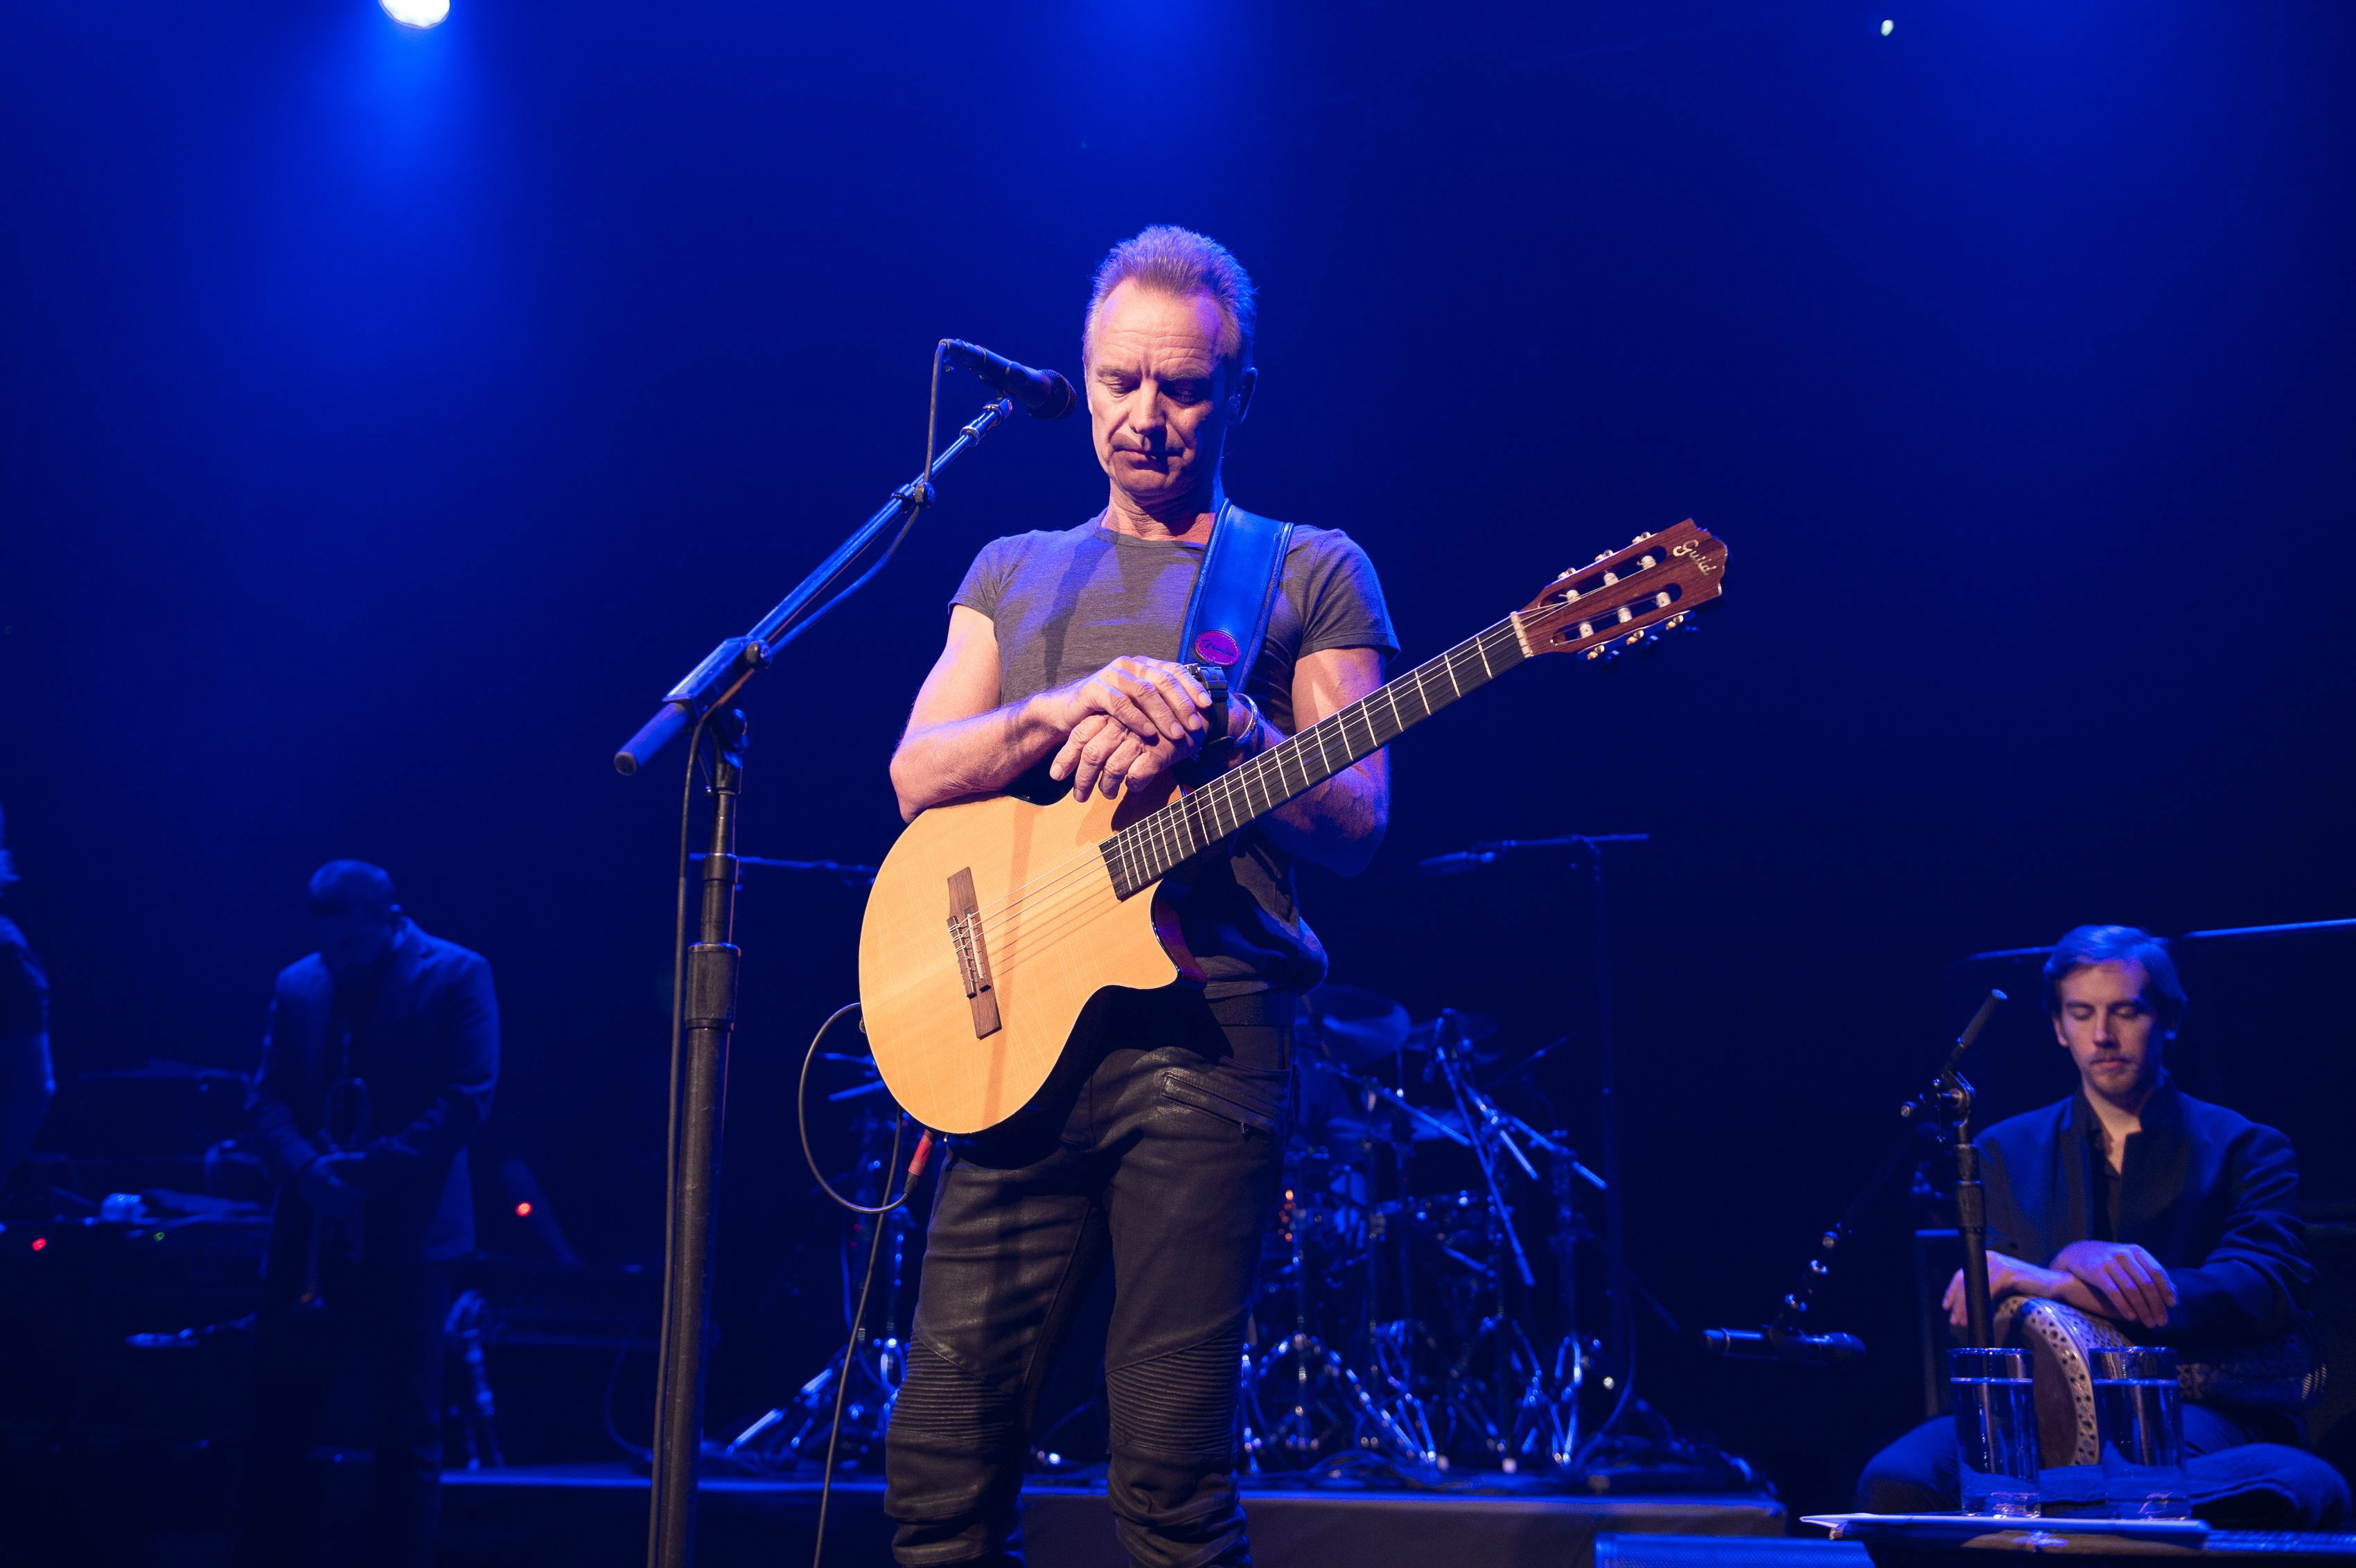 epa05629050 A handout image provided by the Bataclan managment shows British musician Sting (C) during his concert at the new